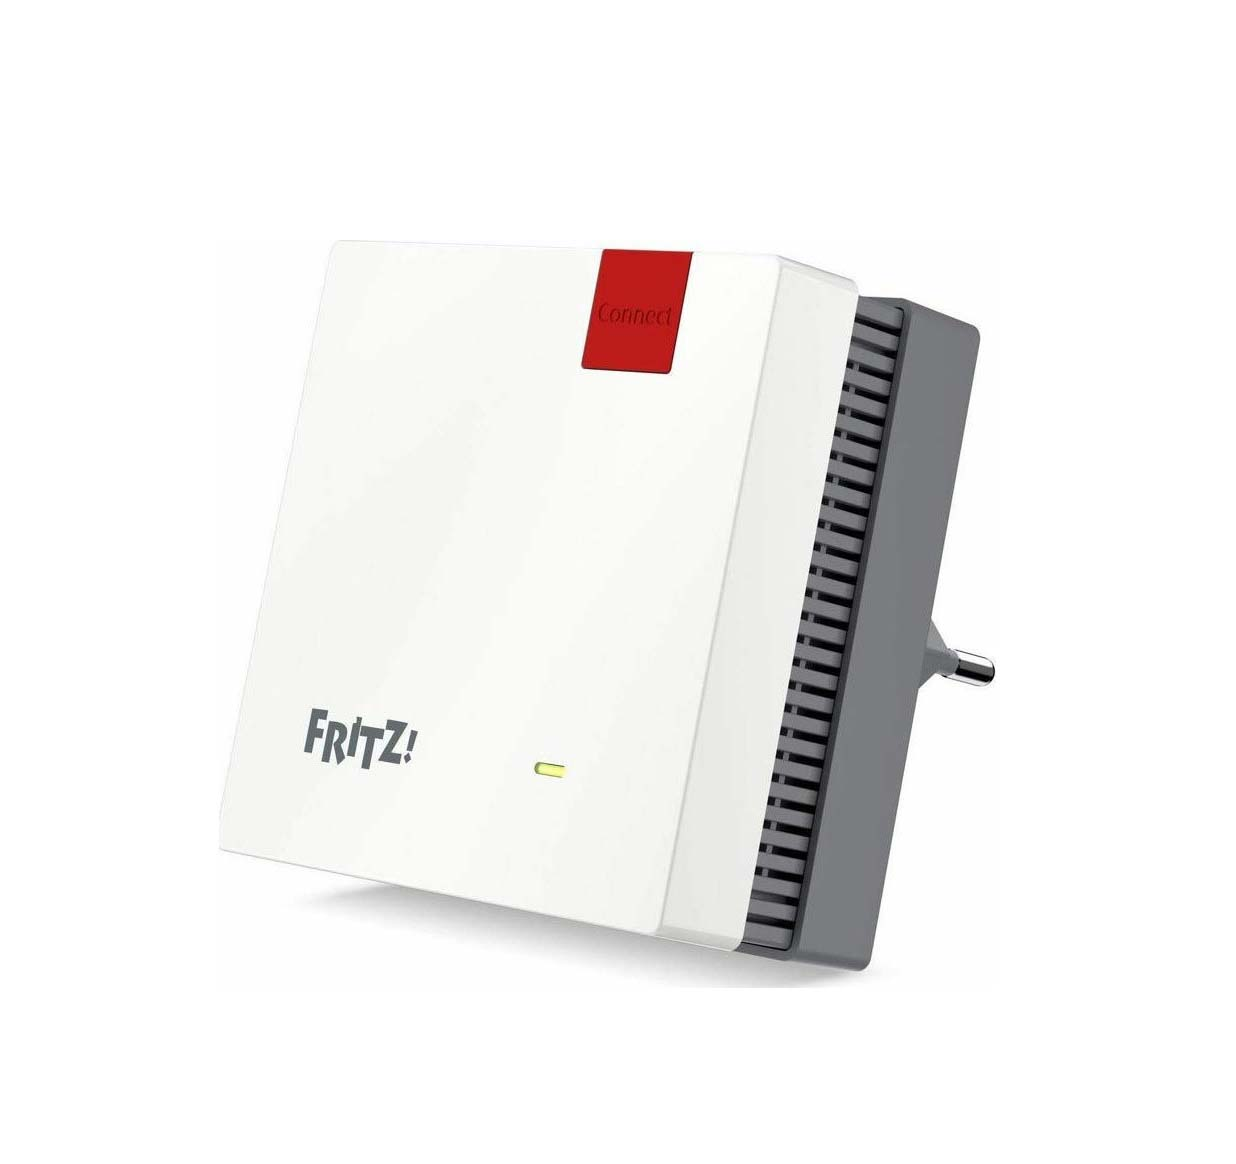 AVM Fritz! Repeater 1200 Dual Band 2.4 & 5GHz 3506944